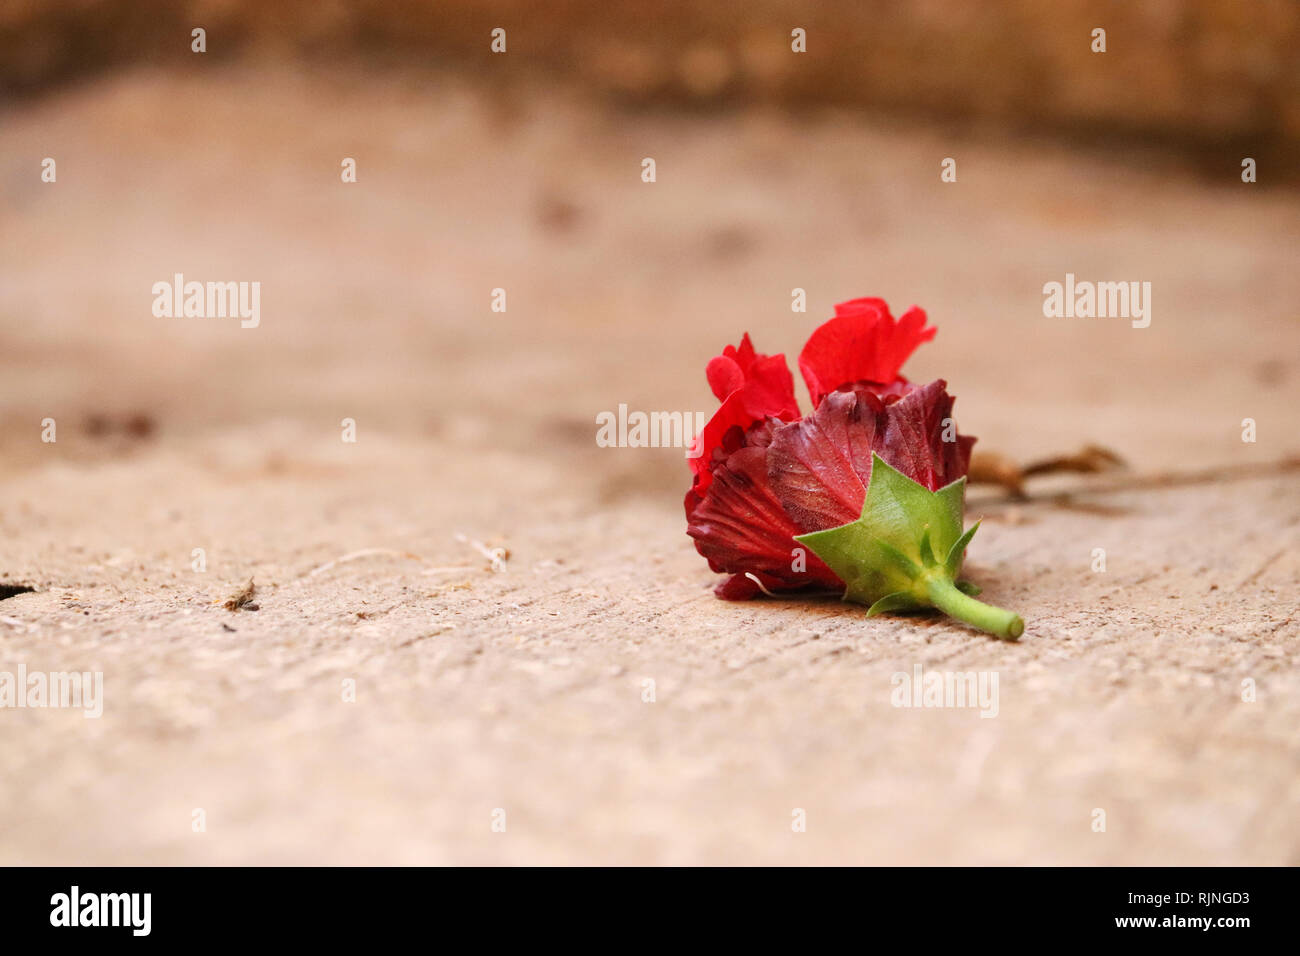 Red Hibiscus Flower - Stock Image